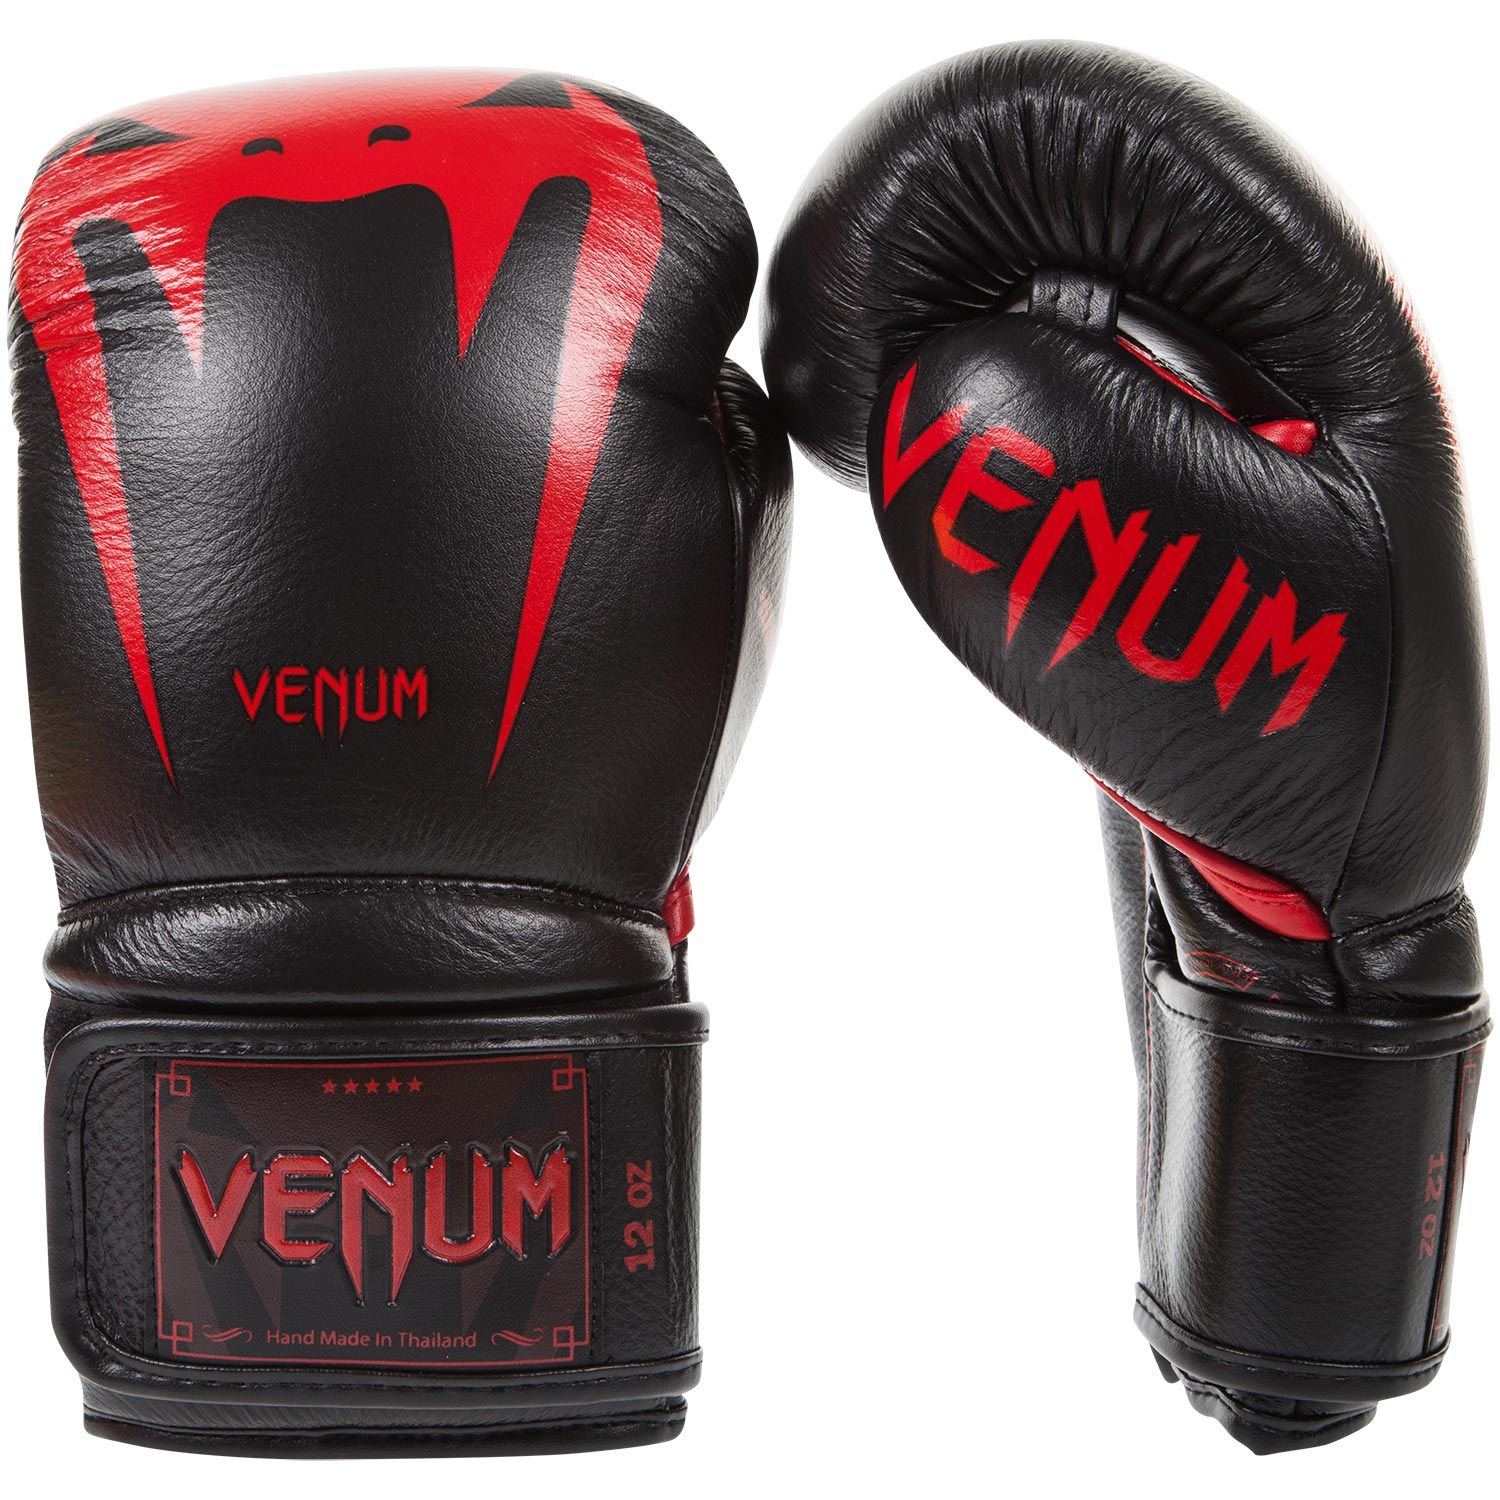 Venum Giant Karate Mitts with Thumb Protection Blue